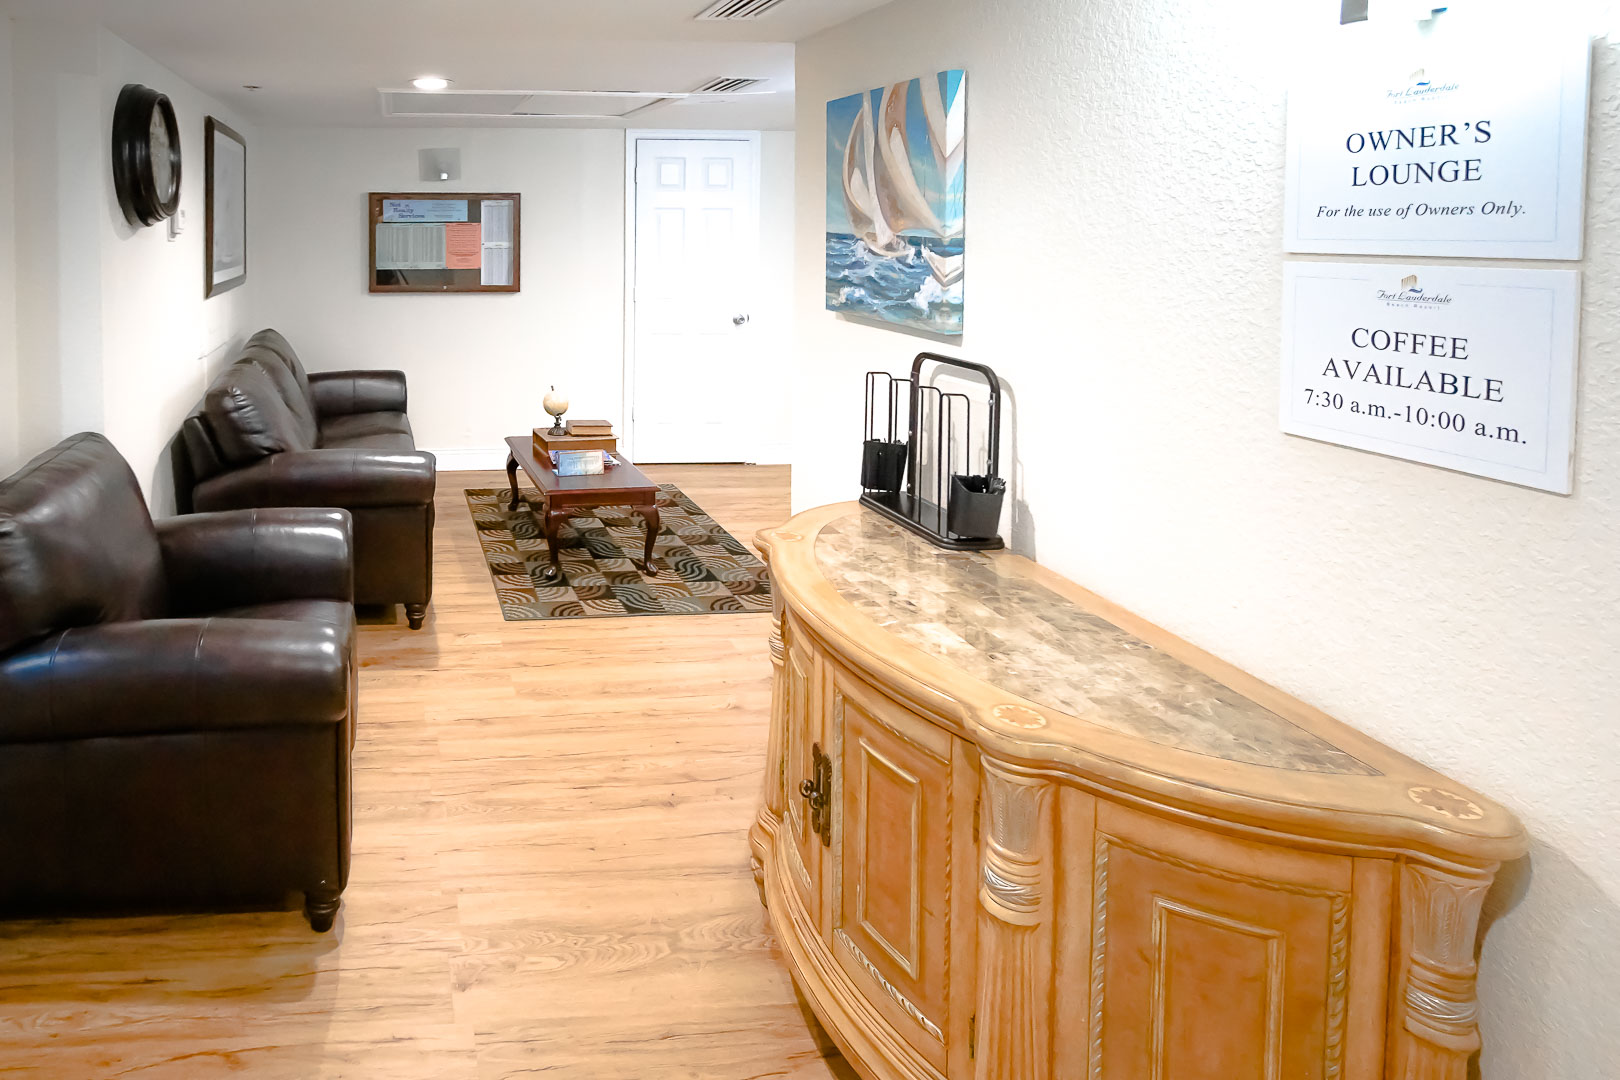 An Owners lounge at VRI's Ft. Lauderdale Beach Resort in Florida.